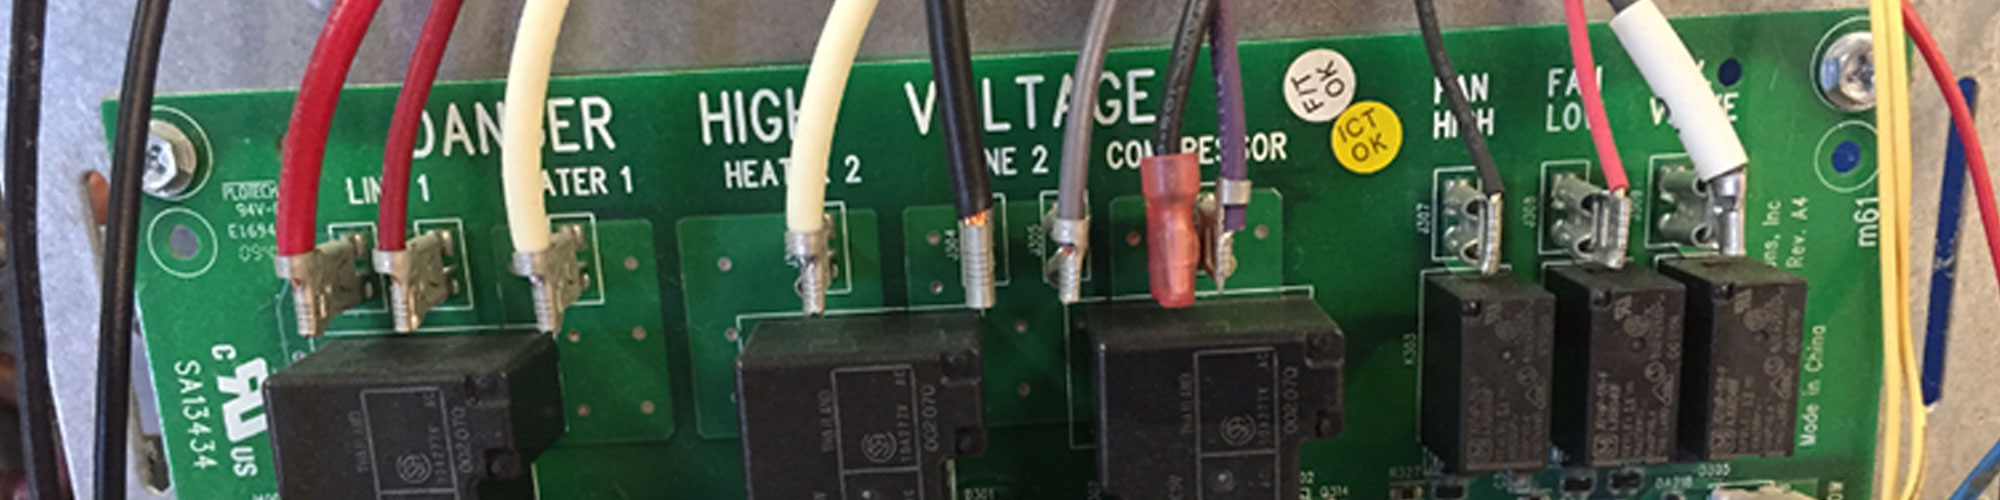 High Voltage Main Board | Heating and Cooling Units in Edgewater, NJ